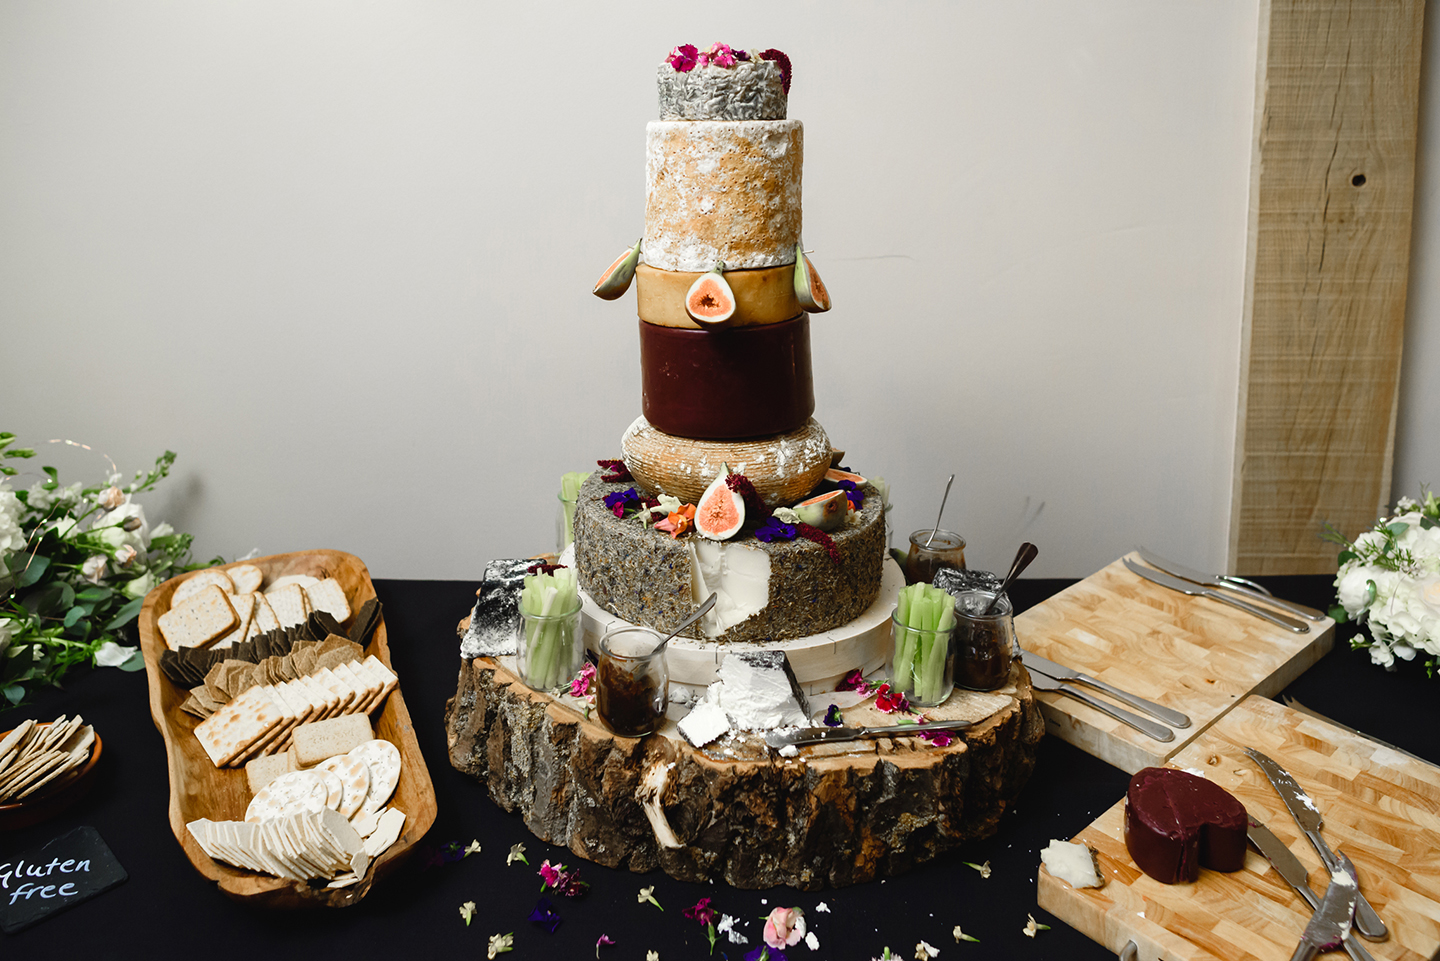 The couple also had a cheese wedding cake which guests enjoyed with biscuits crackers and fruit